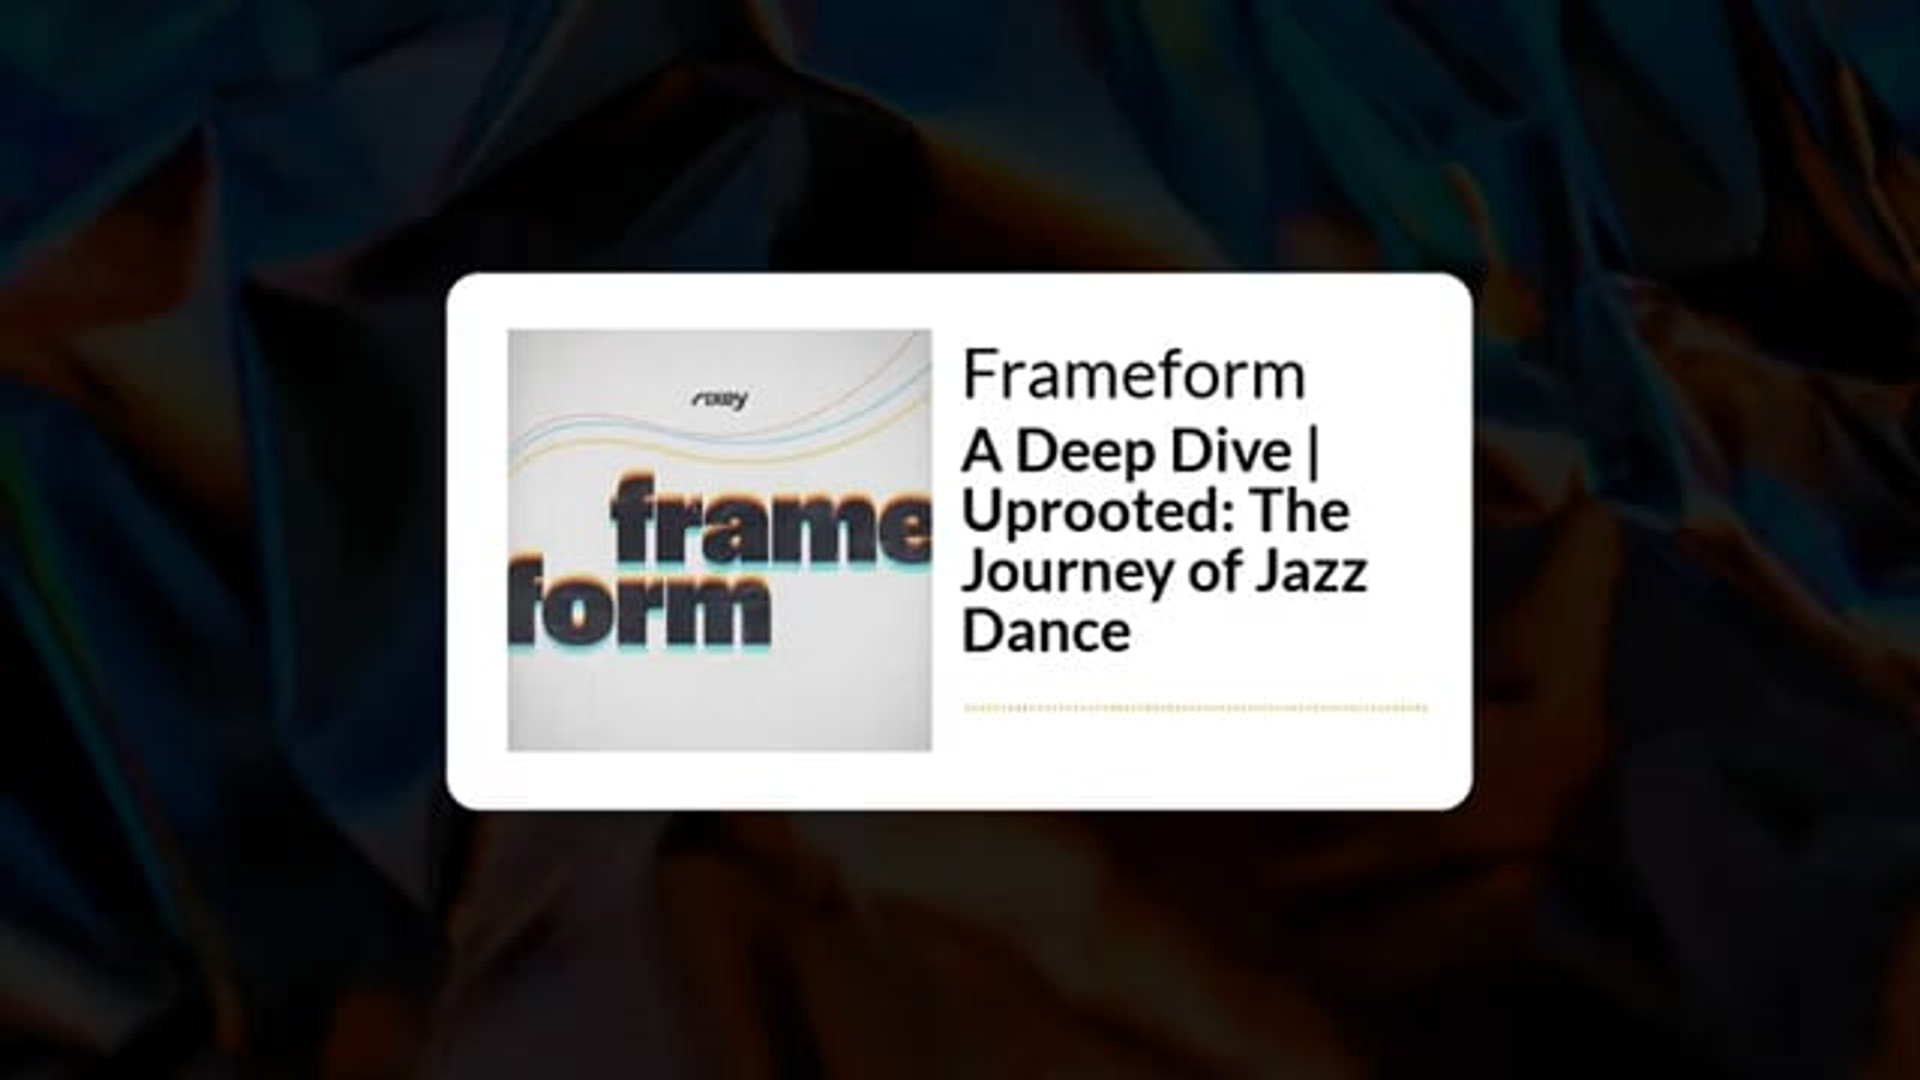 Frameform Podcast Episode 5:  A Deep Dive Uprooted The Journey of Jazz Dance